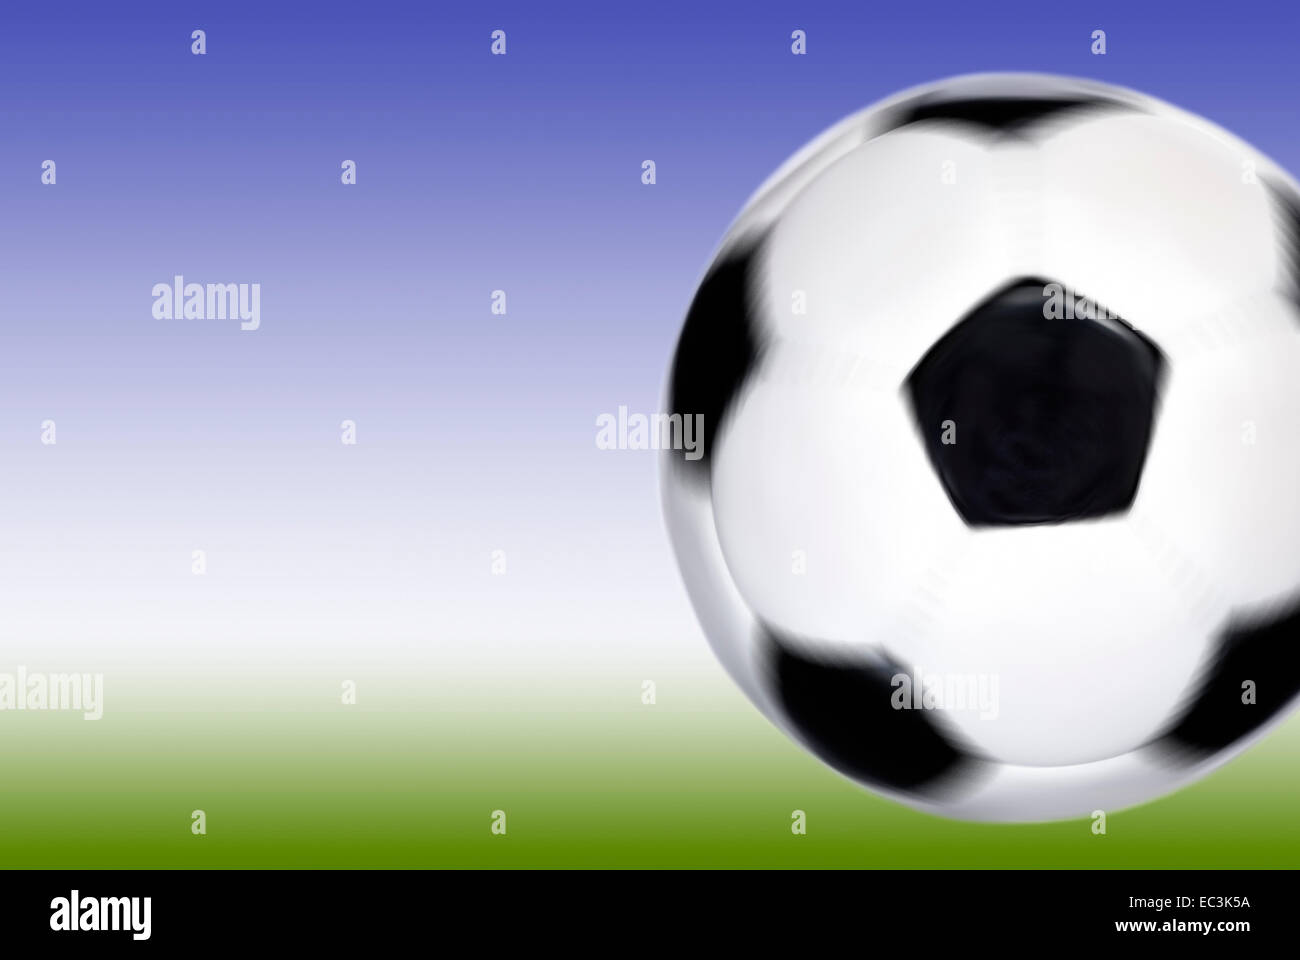 Football in rotation - Stock Image